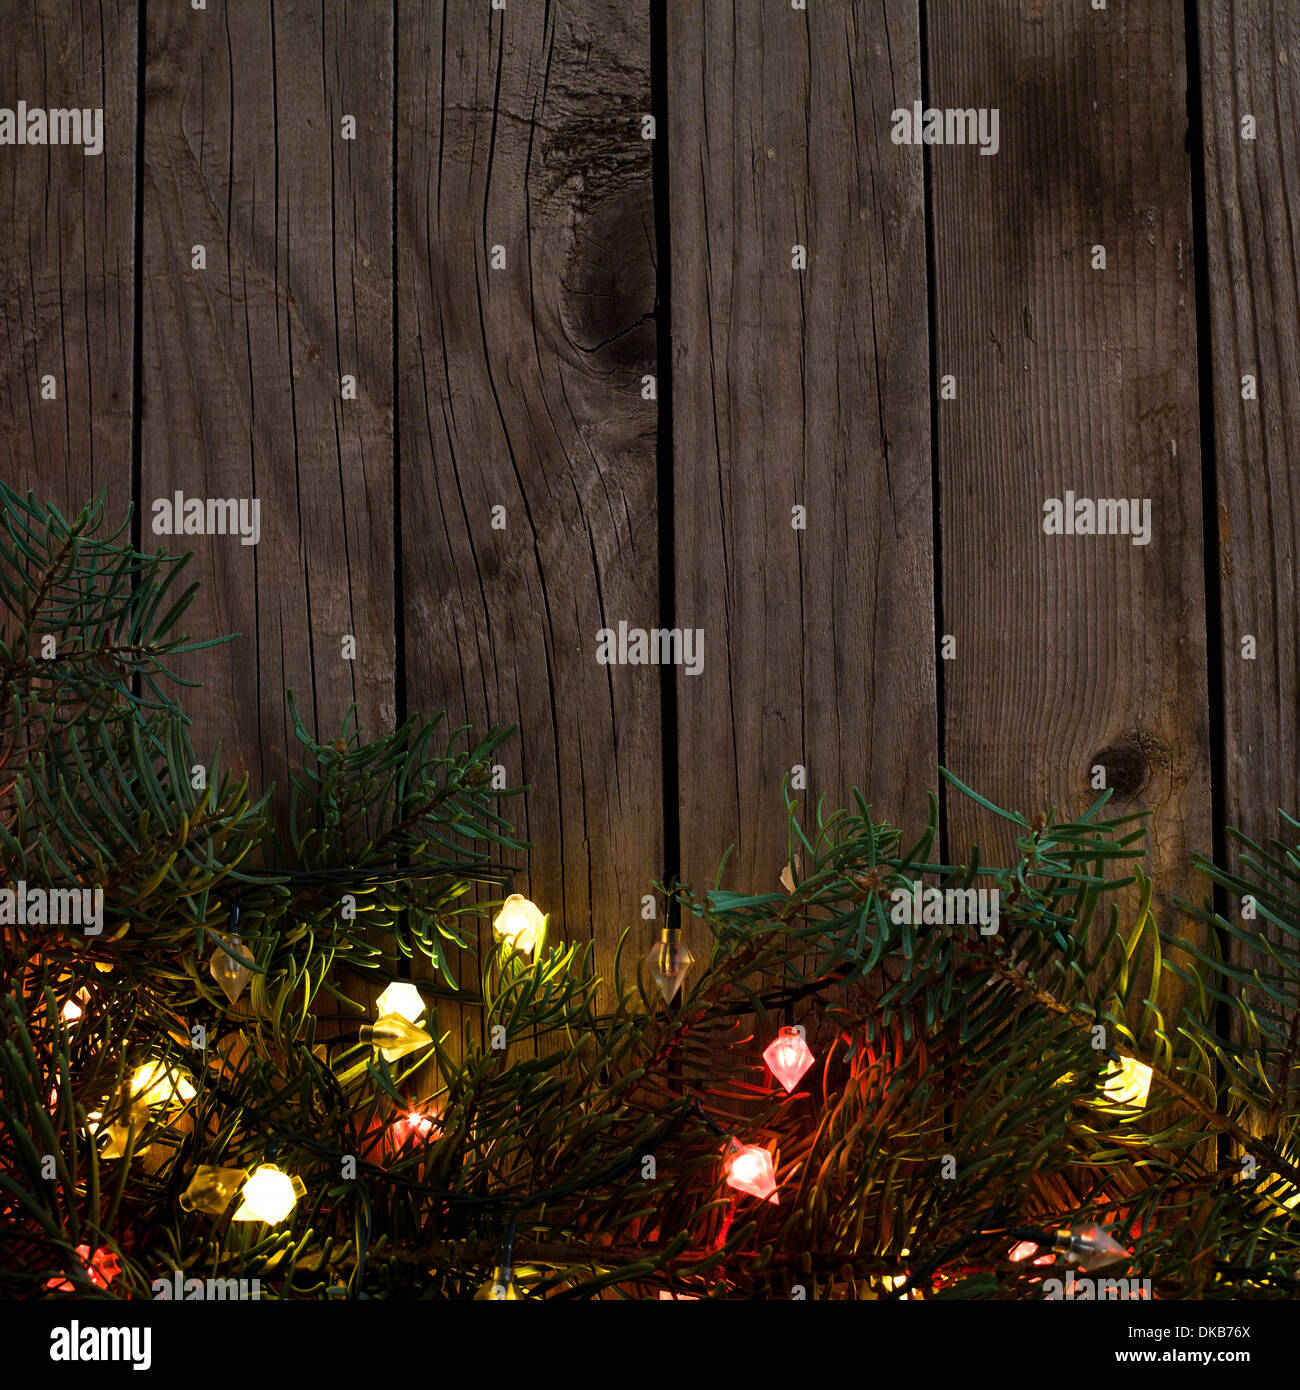 holiday background with christmas lights - Stock Image